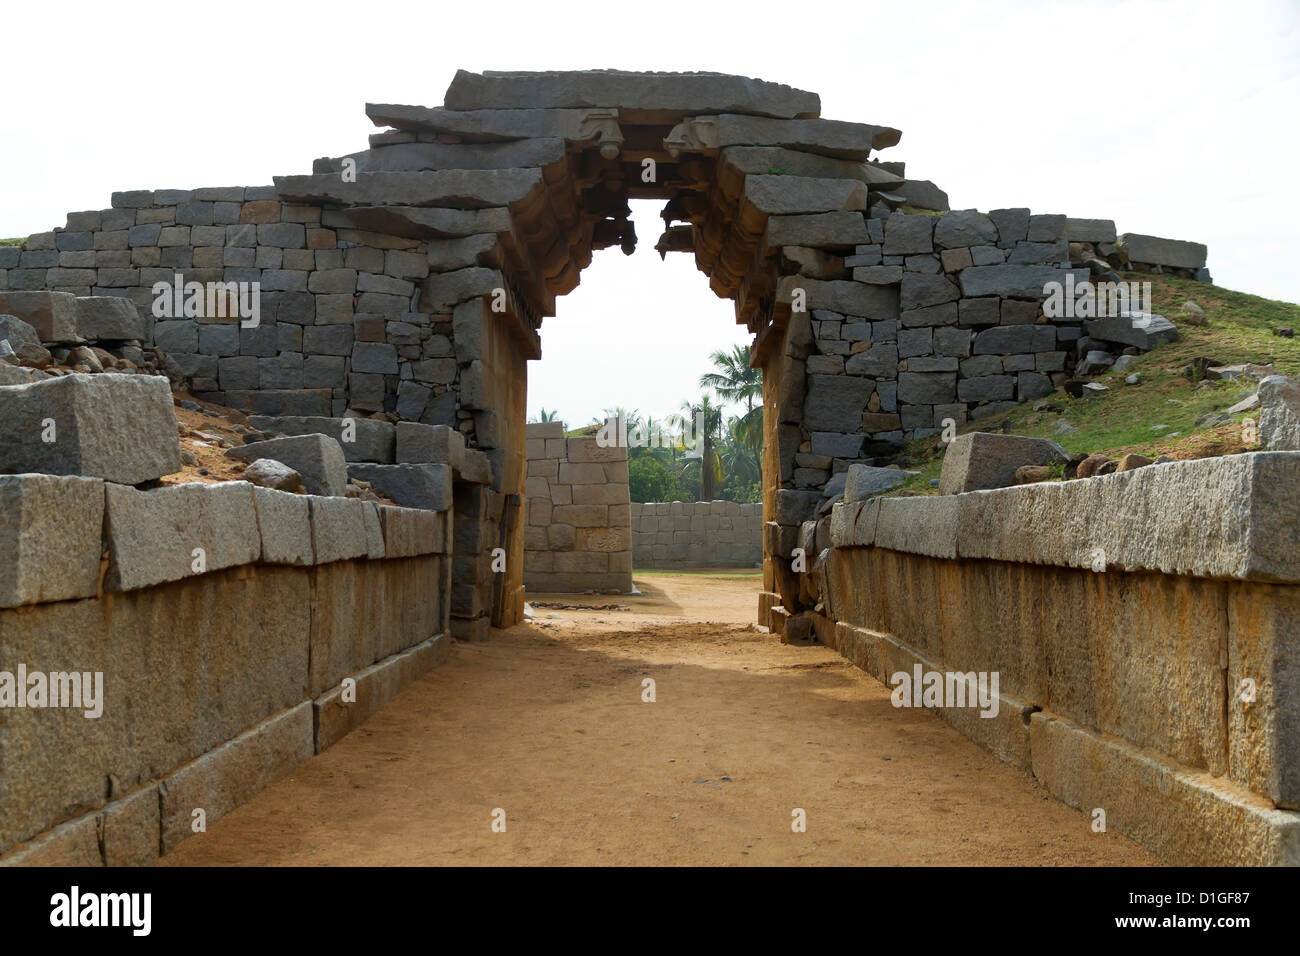 A classic example of the Vijayanagara military architecture, Bhima's gate is located in Hampi, India - Stock Image